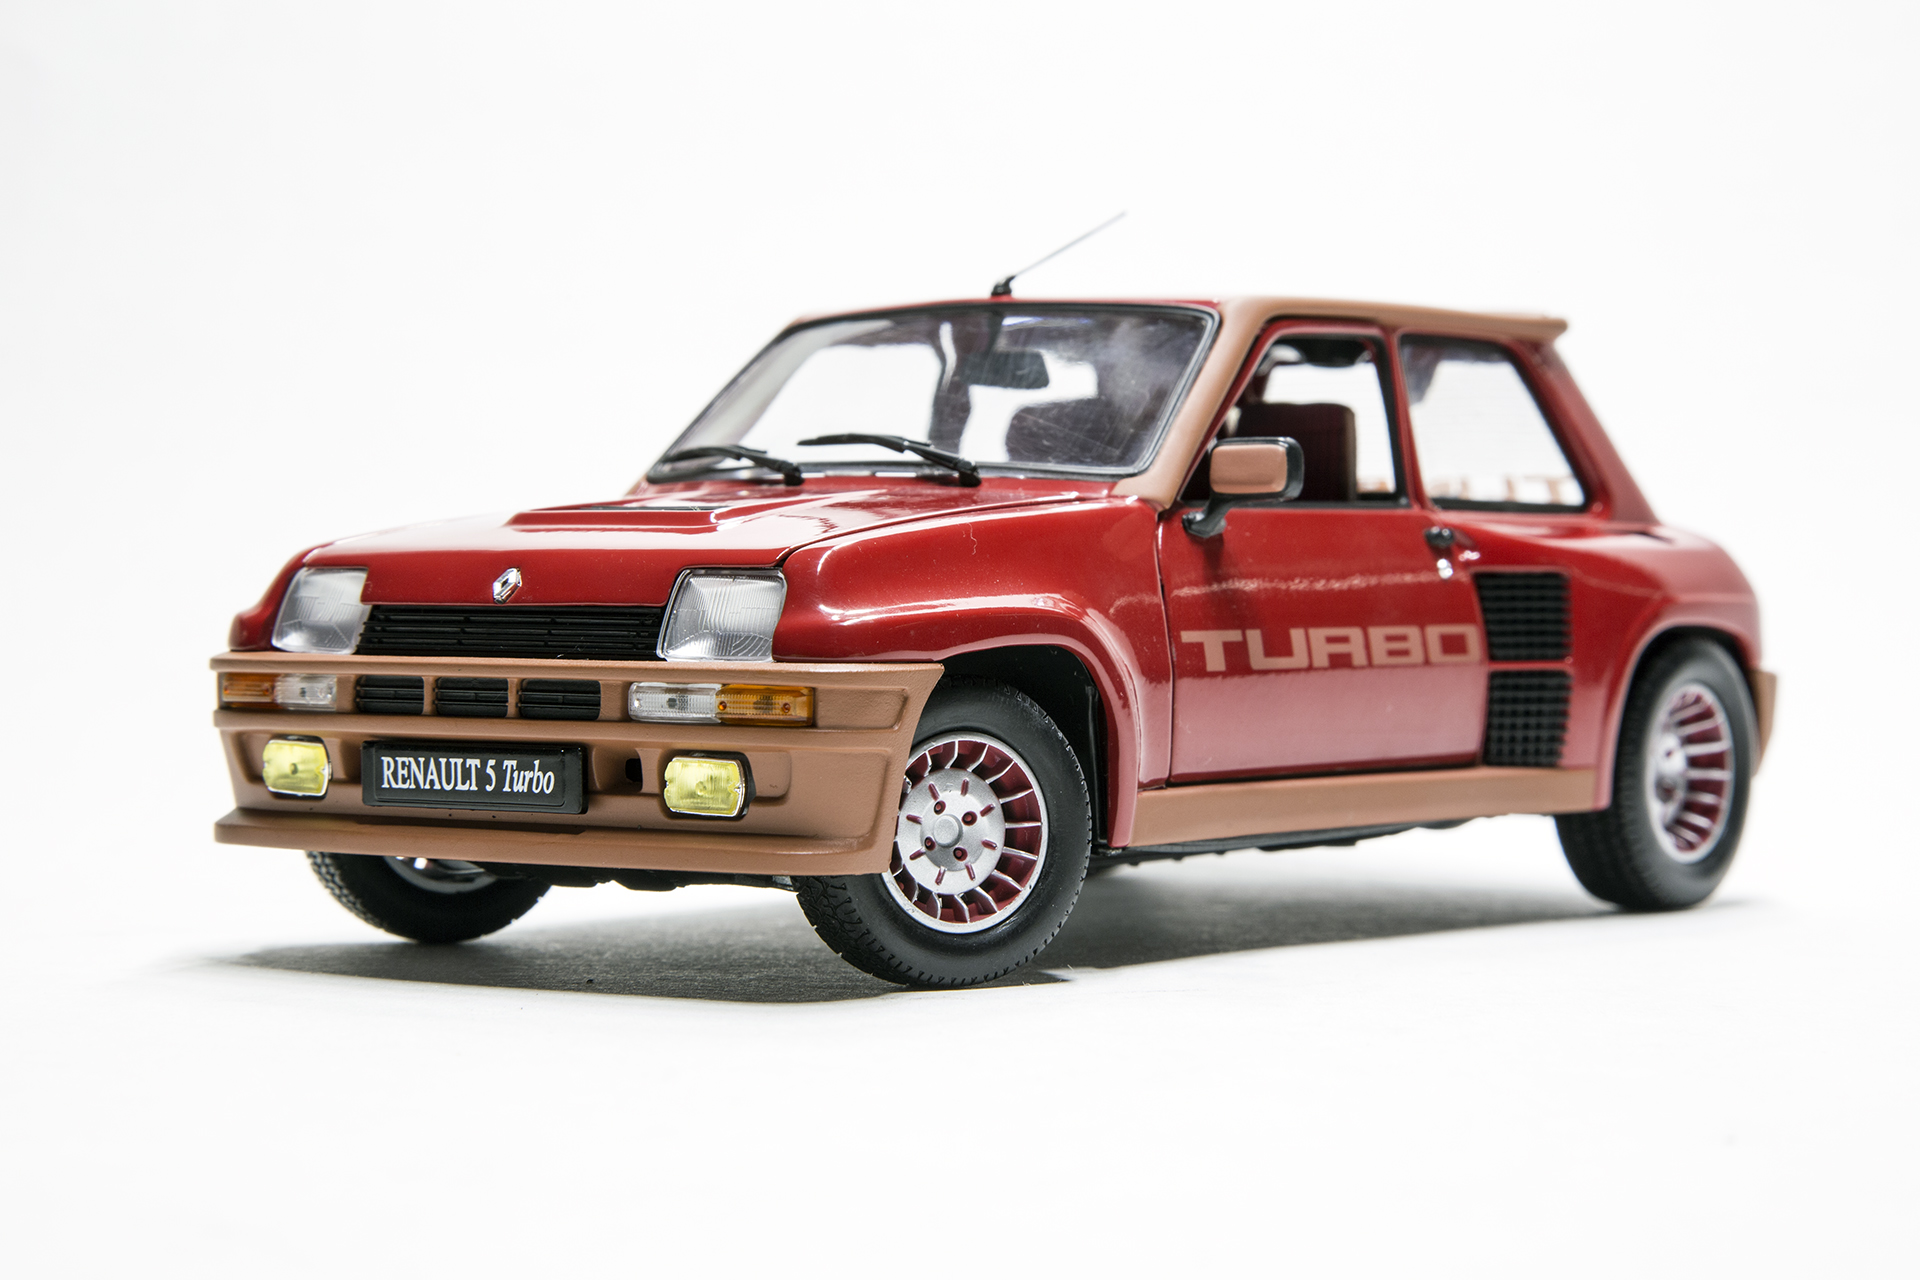 1 18 scale diecast model cars renault 5 turbo red universal hobbies uh4520. Black Bedroom Furniture Sets. Home Design Ideas